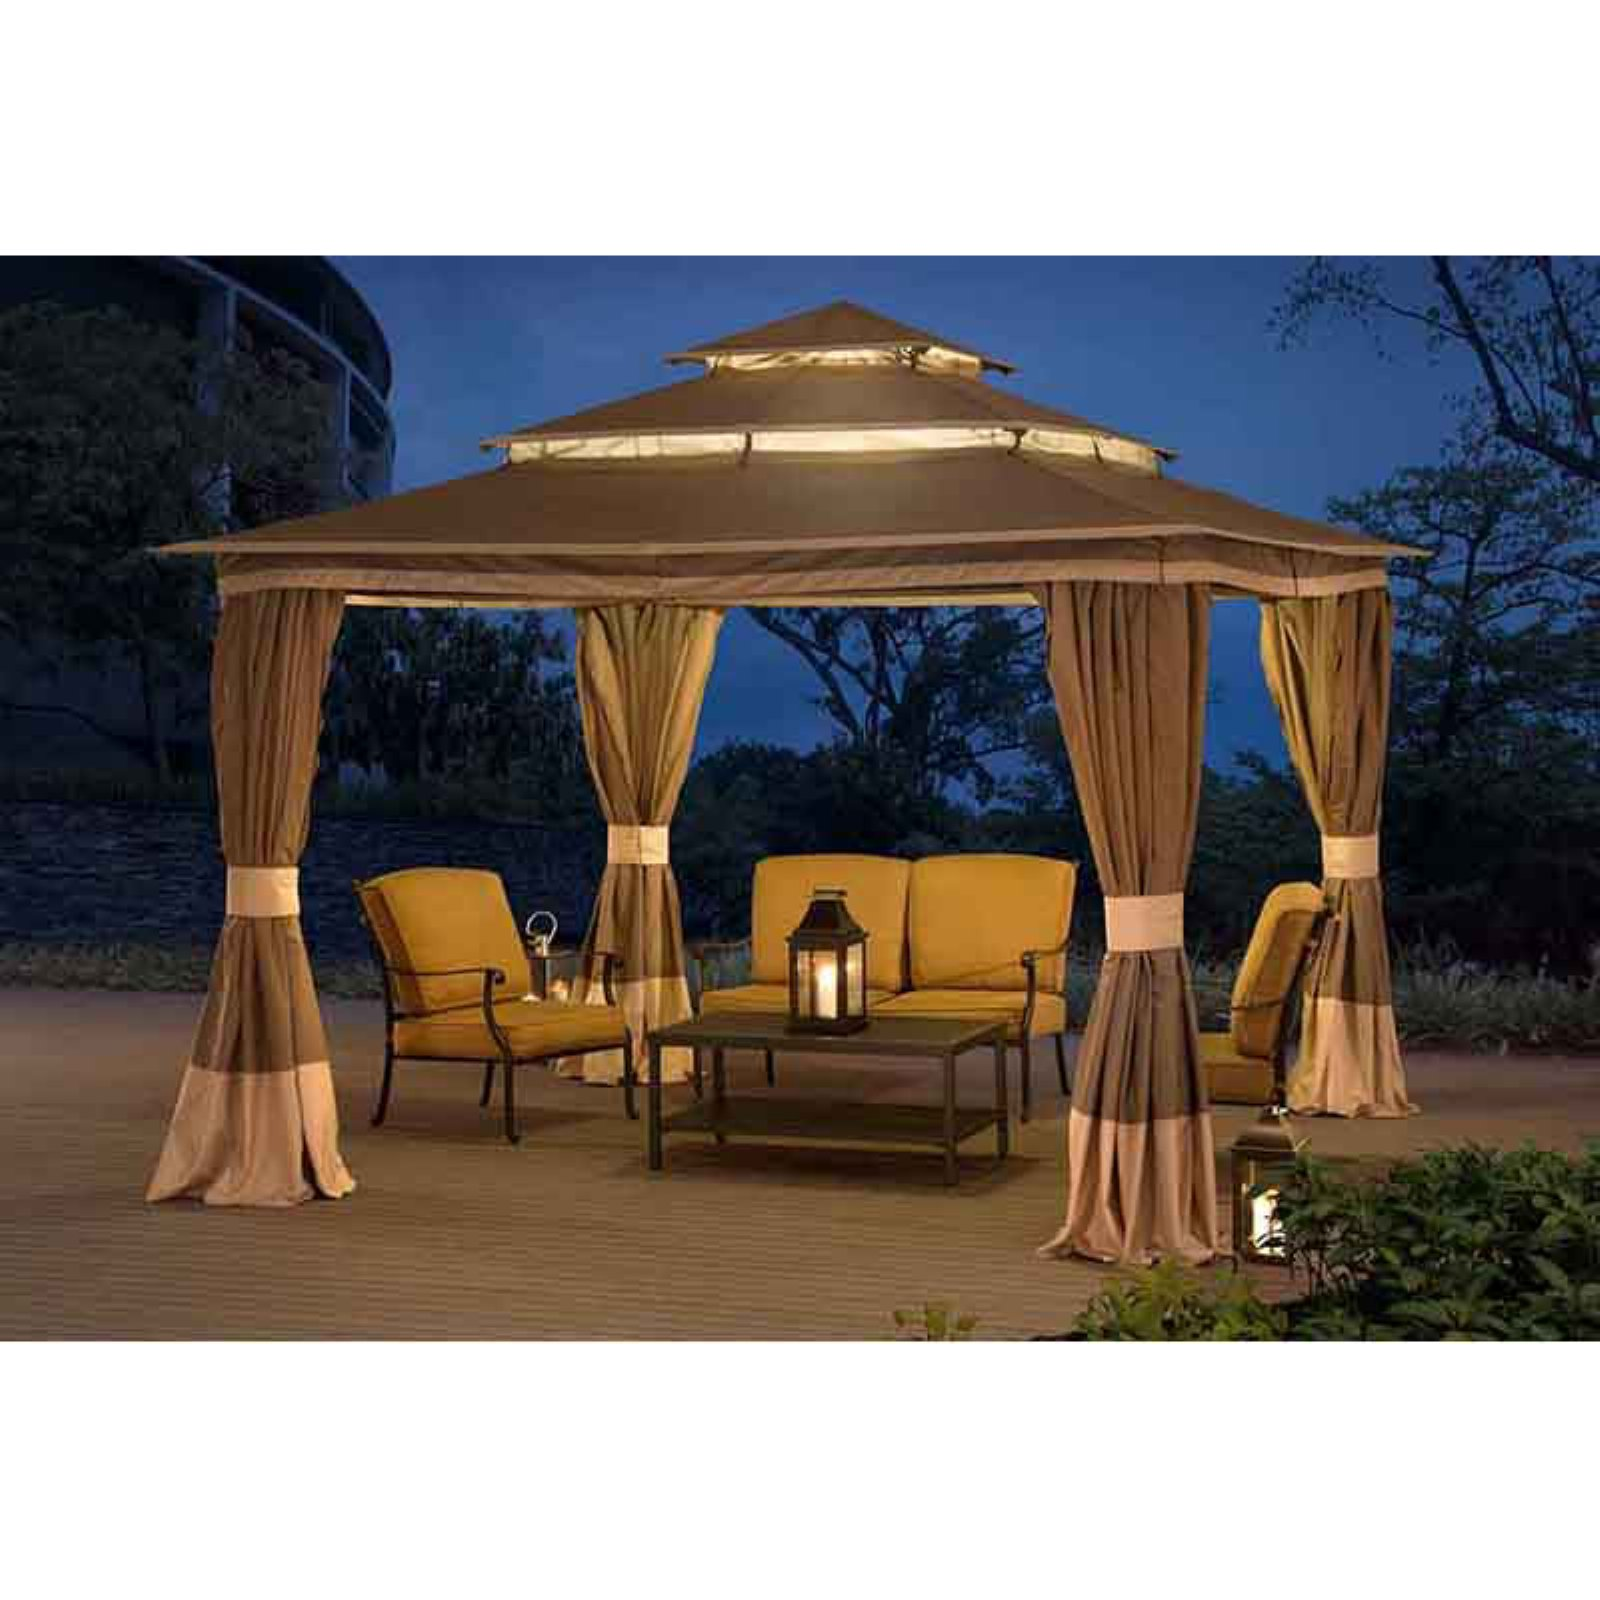 Sunjoy Tierney Gazebo with netting by SunNest Service LLC